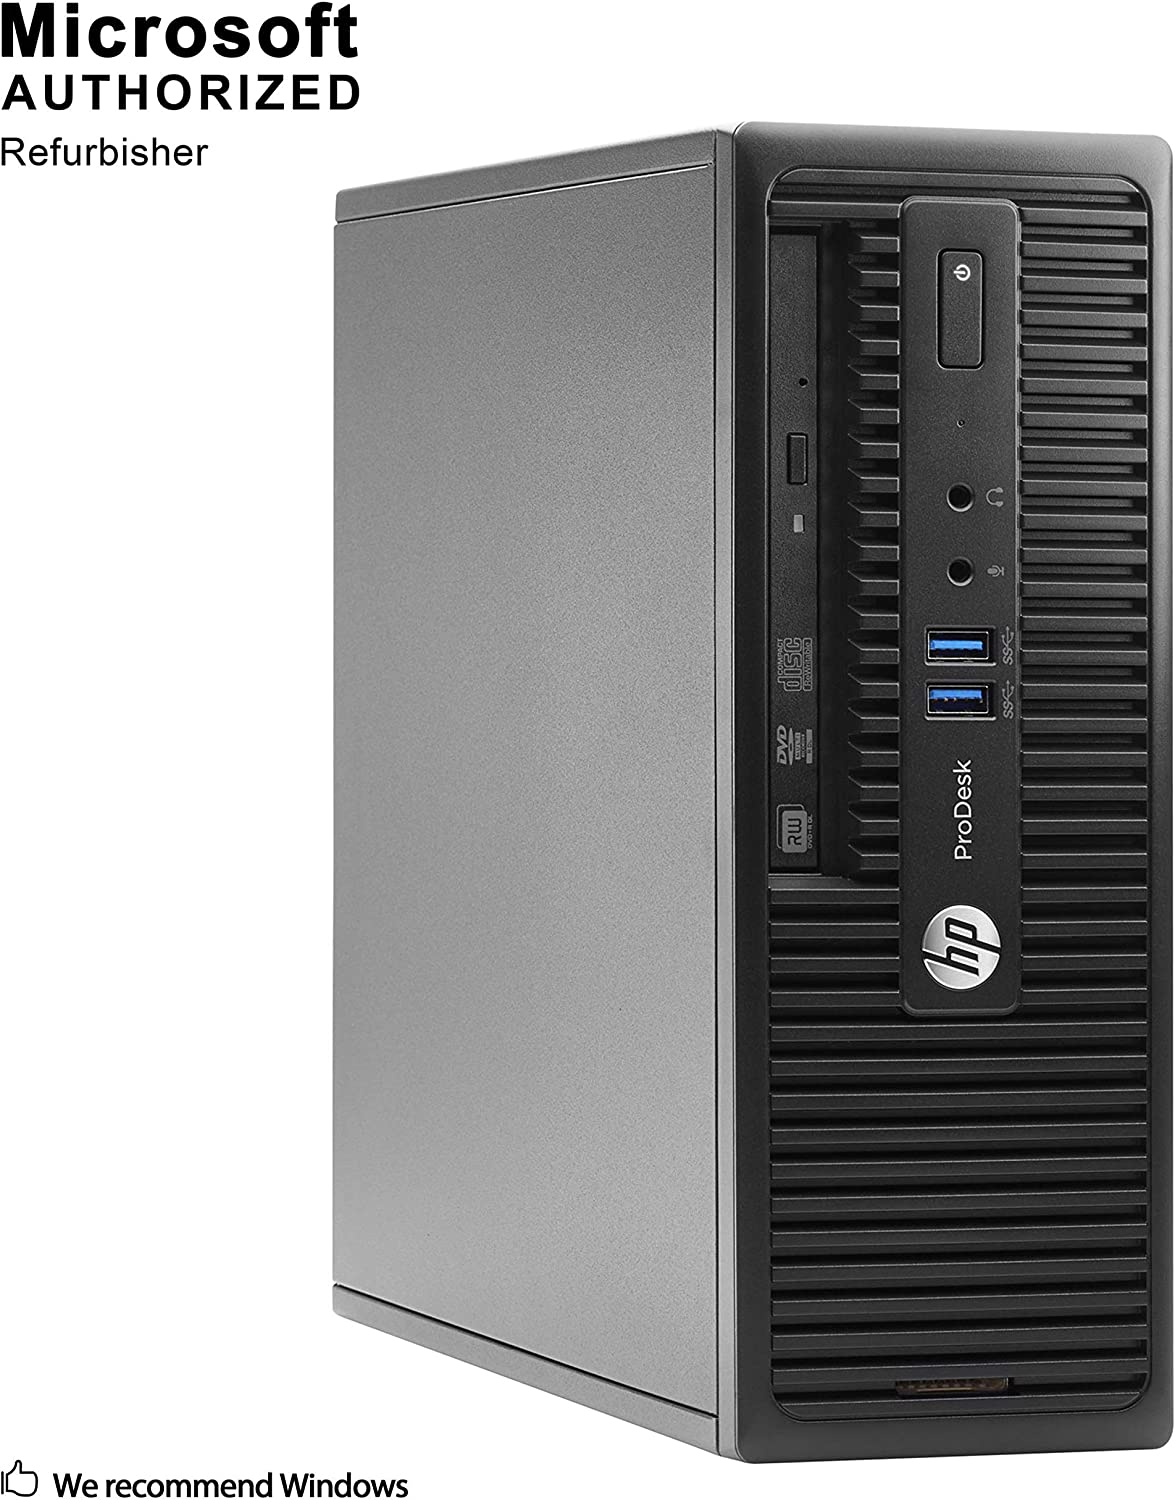 HP ProDesk 400 G3 Small Form Factor, Intel Core Quad i5 6500 up to 3.6 GHz, 12GB DDR4, 1TB SSD, WiFi, BT 4.0, DVDRW, VGA, DP, Windows 10 64-Multi-Language Support English/Spanish/French(Renewed)